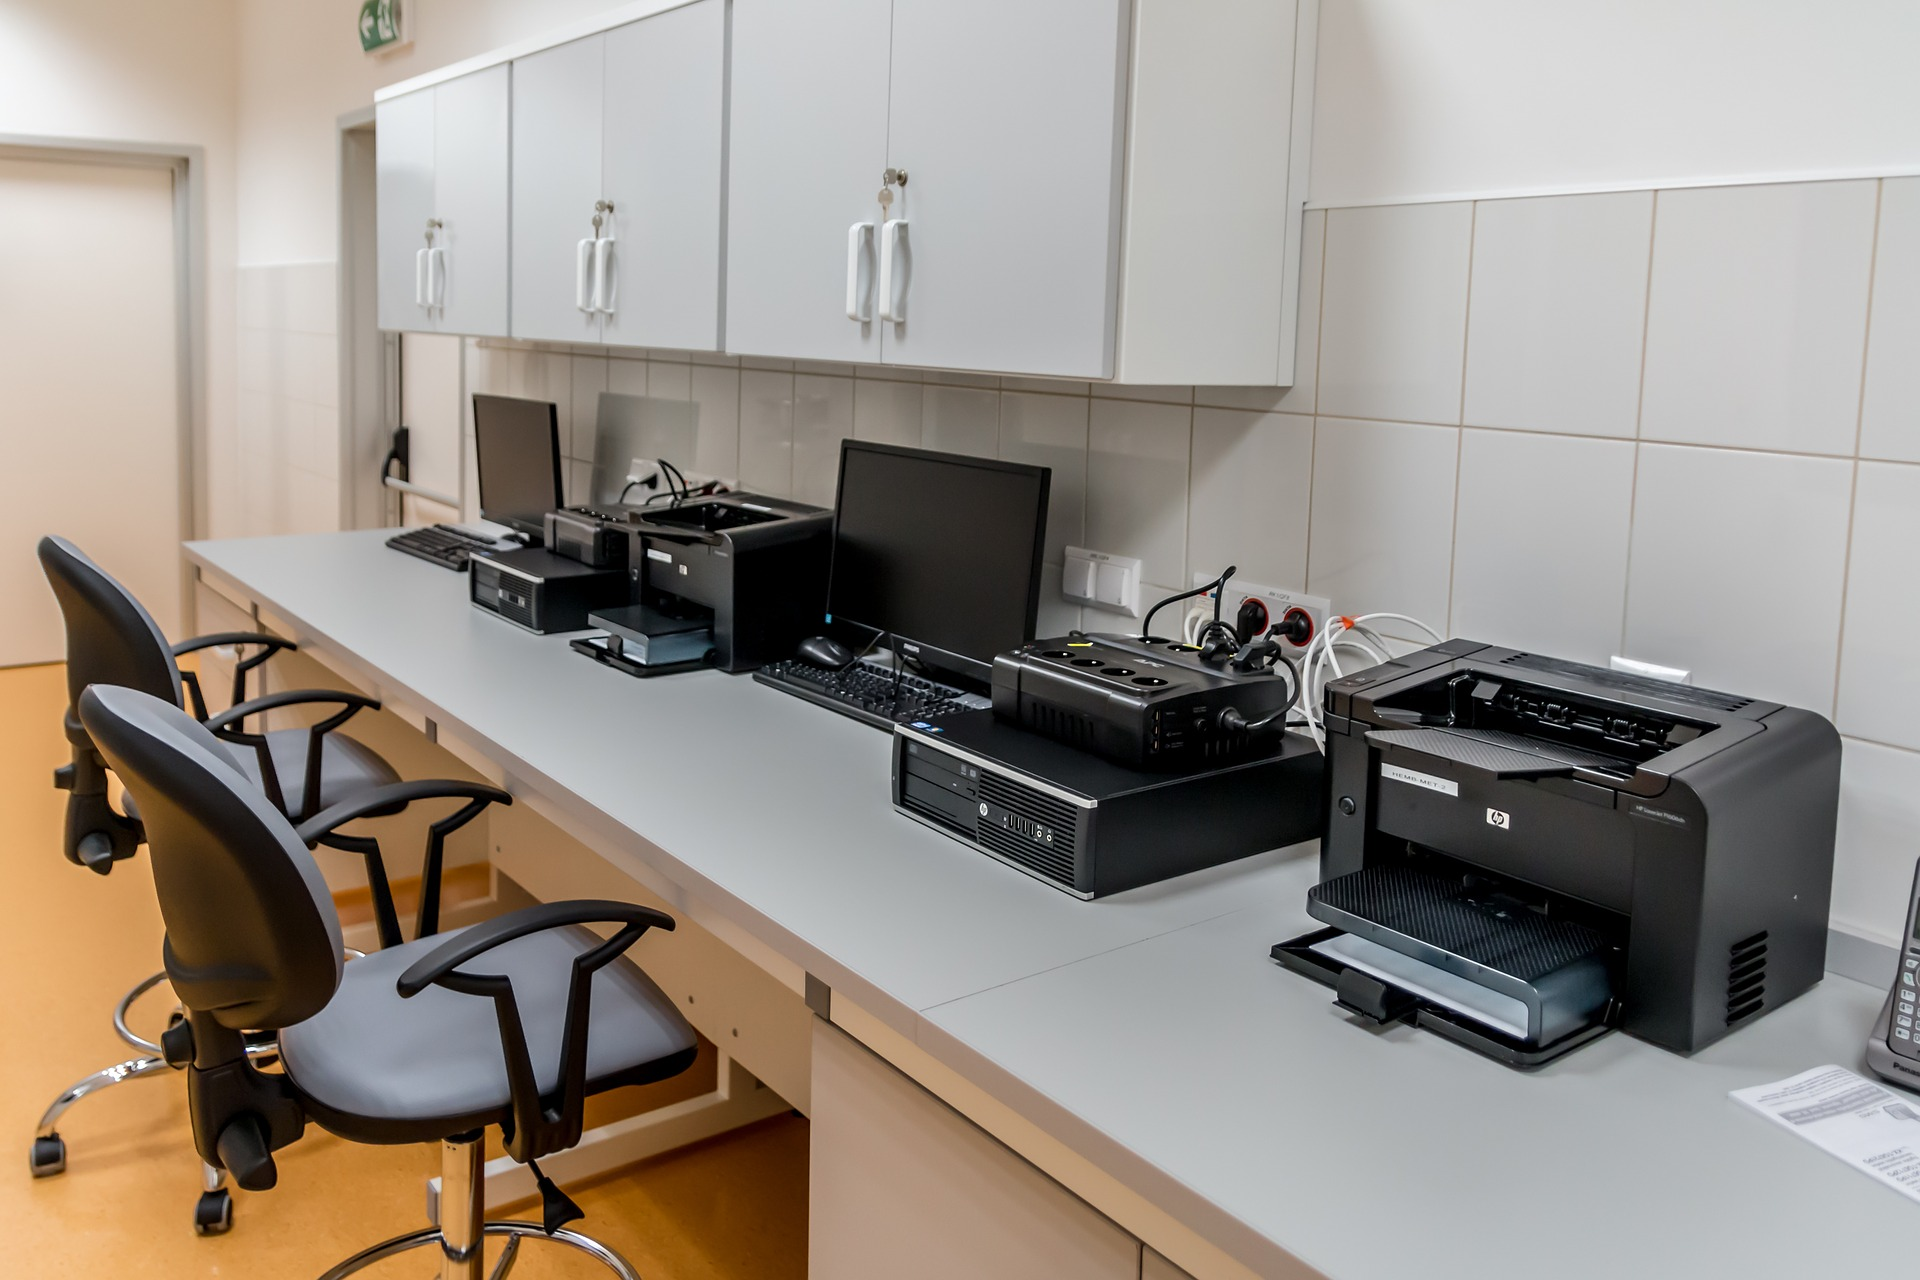 a line of printer in an office